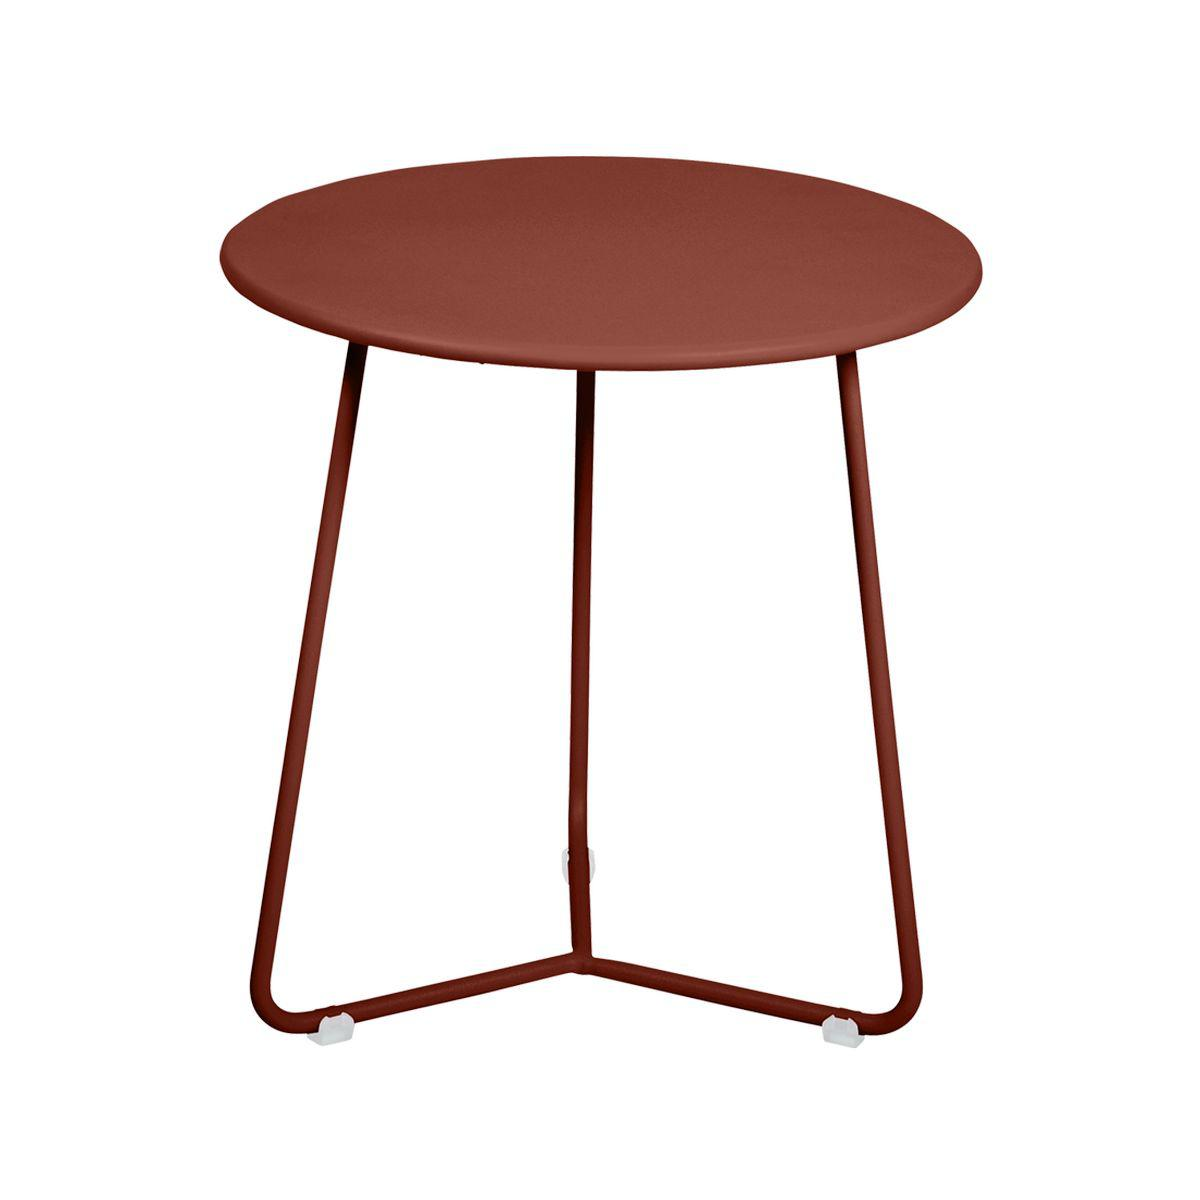 Table d'appoint COCOTTE Fermob rouge ocre